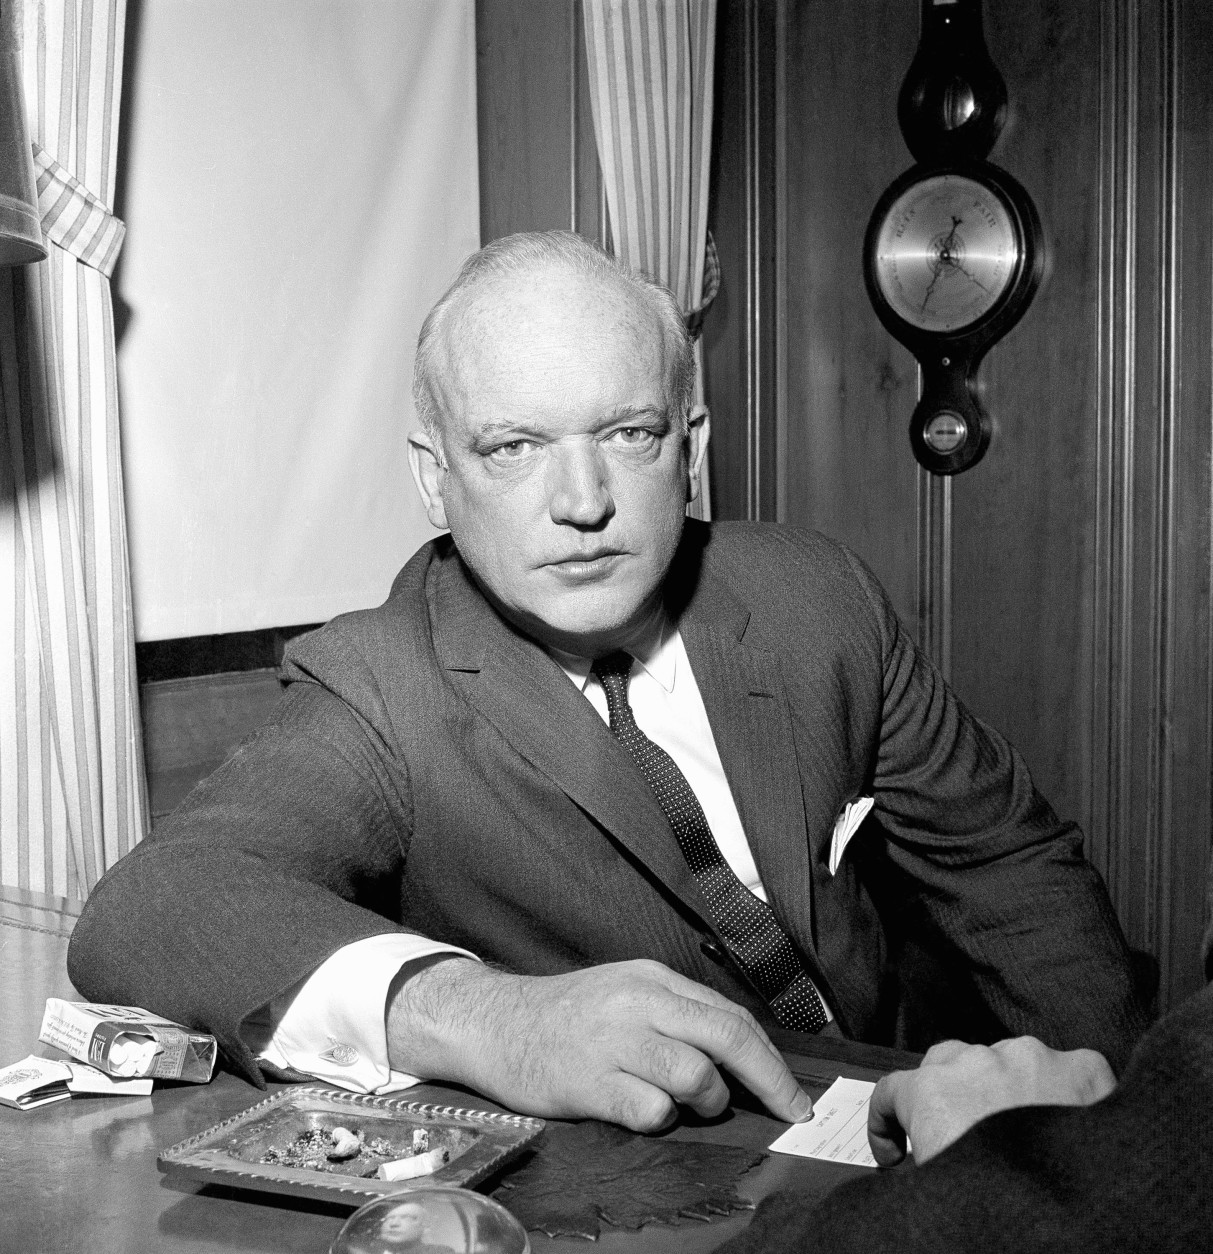 James Britt Donovan, Brooklyn attorney who negotiated the U.S.- Soviet prisoner swap, talks with newsmen in his Brooklyn, N.Y., apartment on Feb. 11, 1962. He said the only American known to be behind bars still in the Soviet Union, Marvin Makinen of Ashburnham, Mass., may soon be released. (AP Photo/Marty Lederhandler)